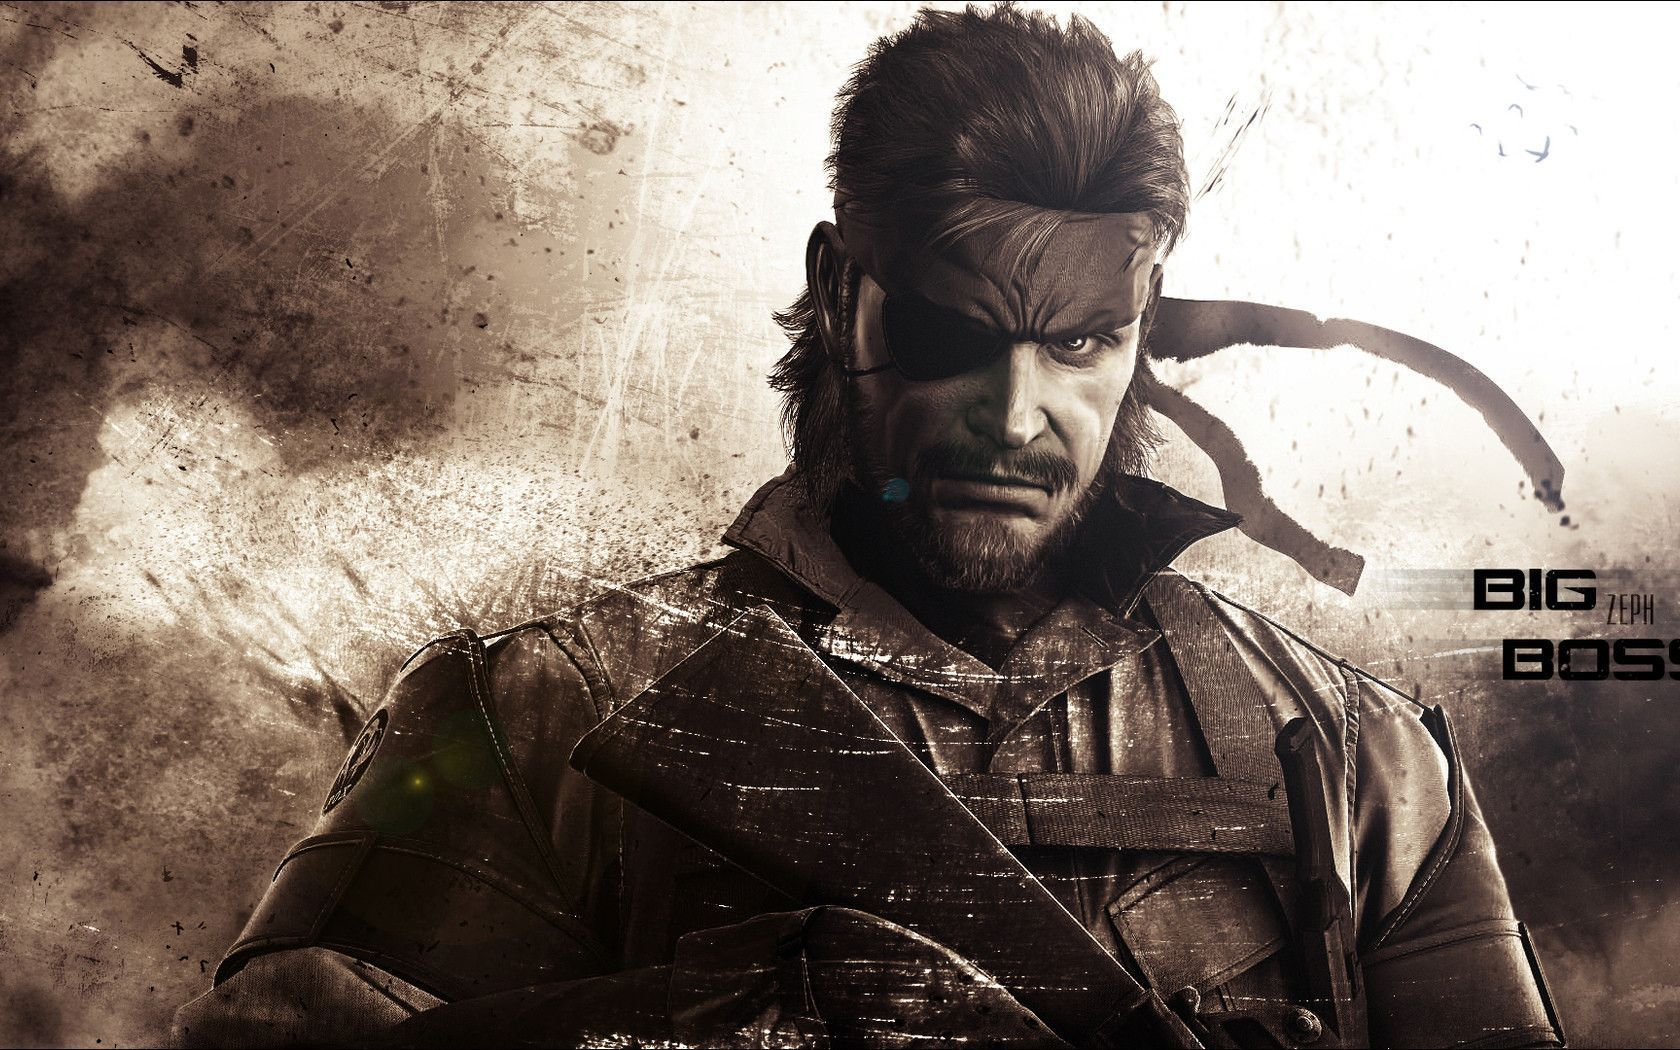 big boss wallpapers - wallpaper cave | all wallpapers | pinterest